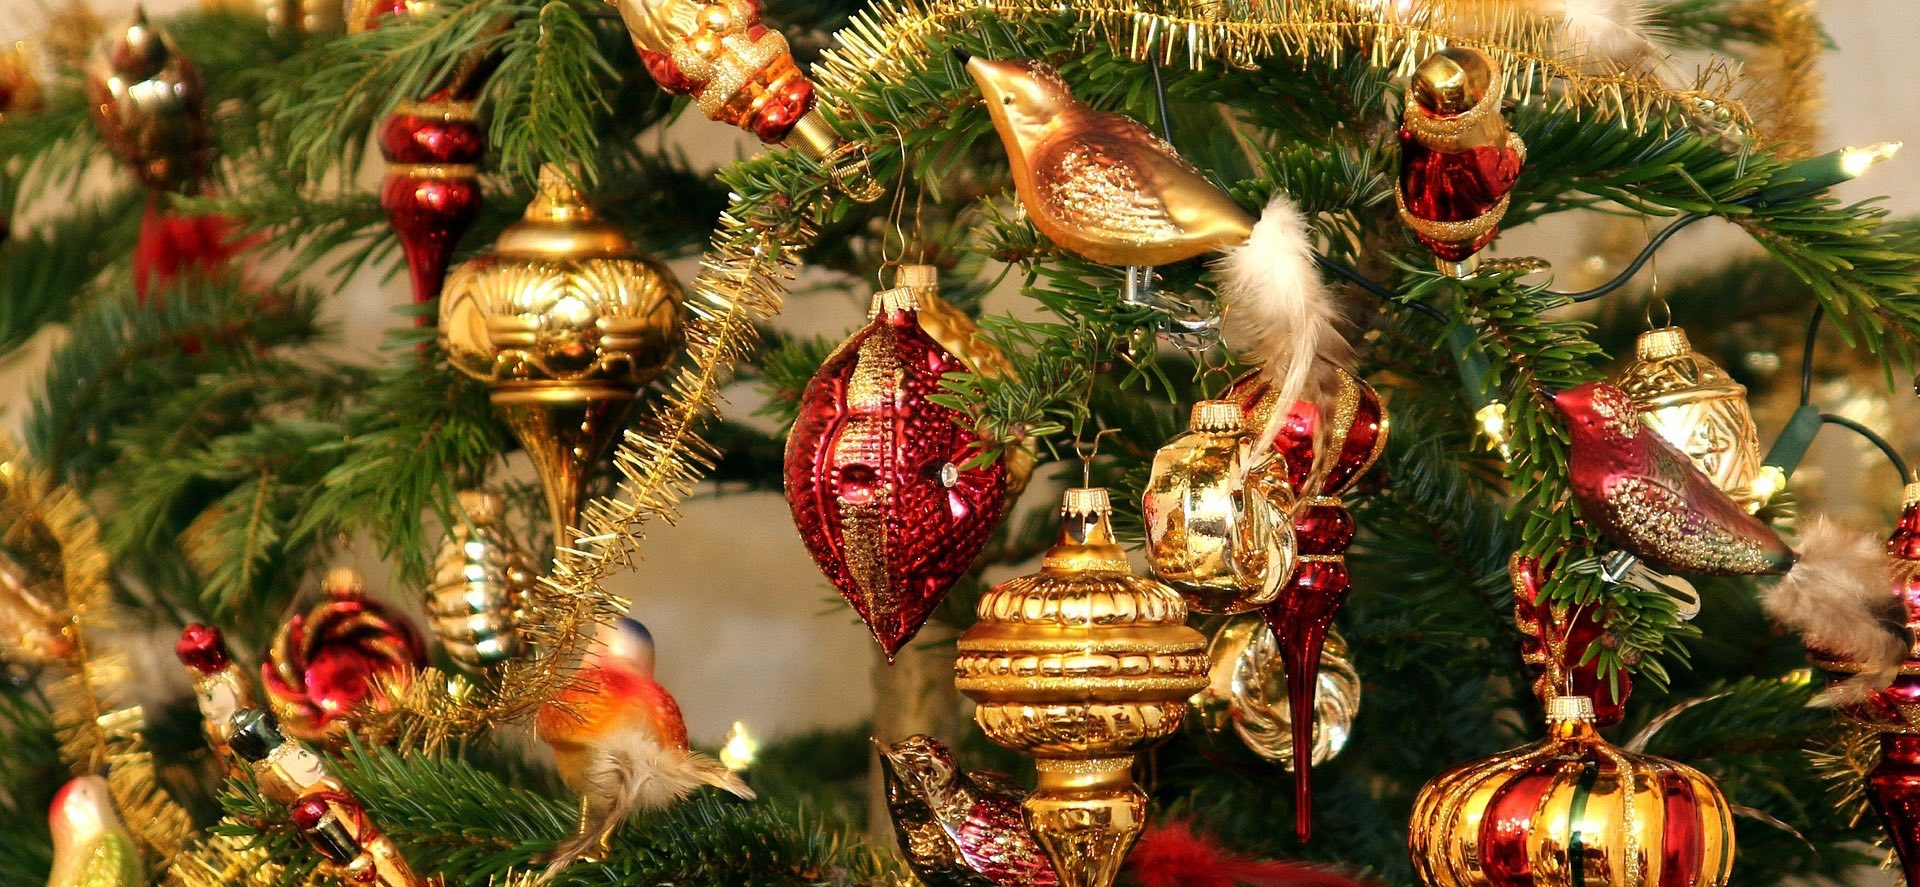 vintage christmas tree image and link to vintage accessories